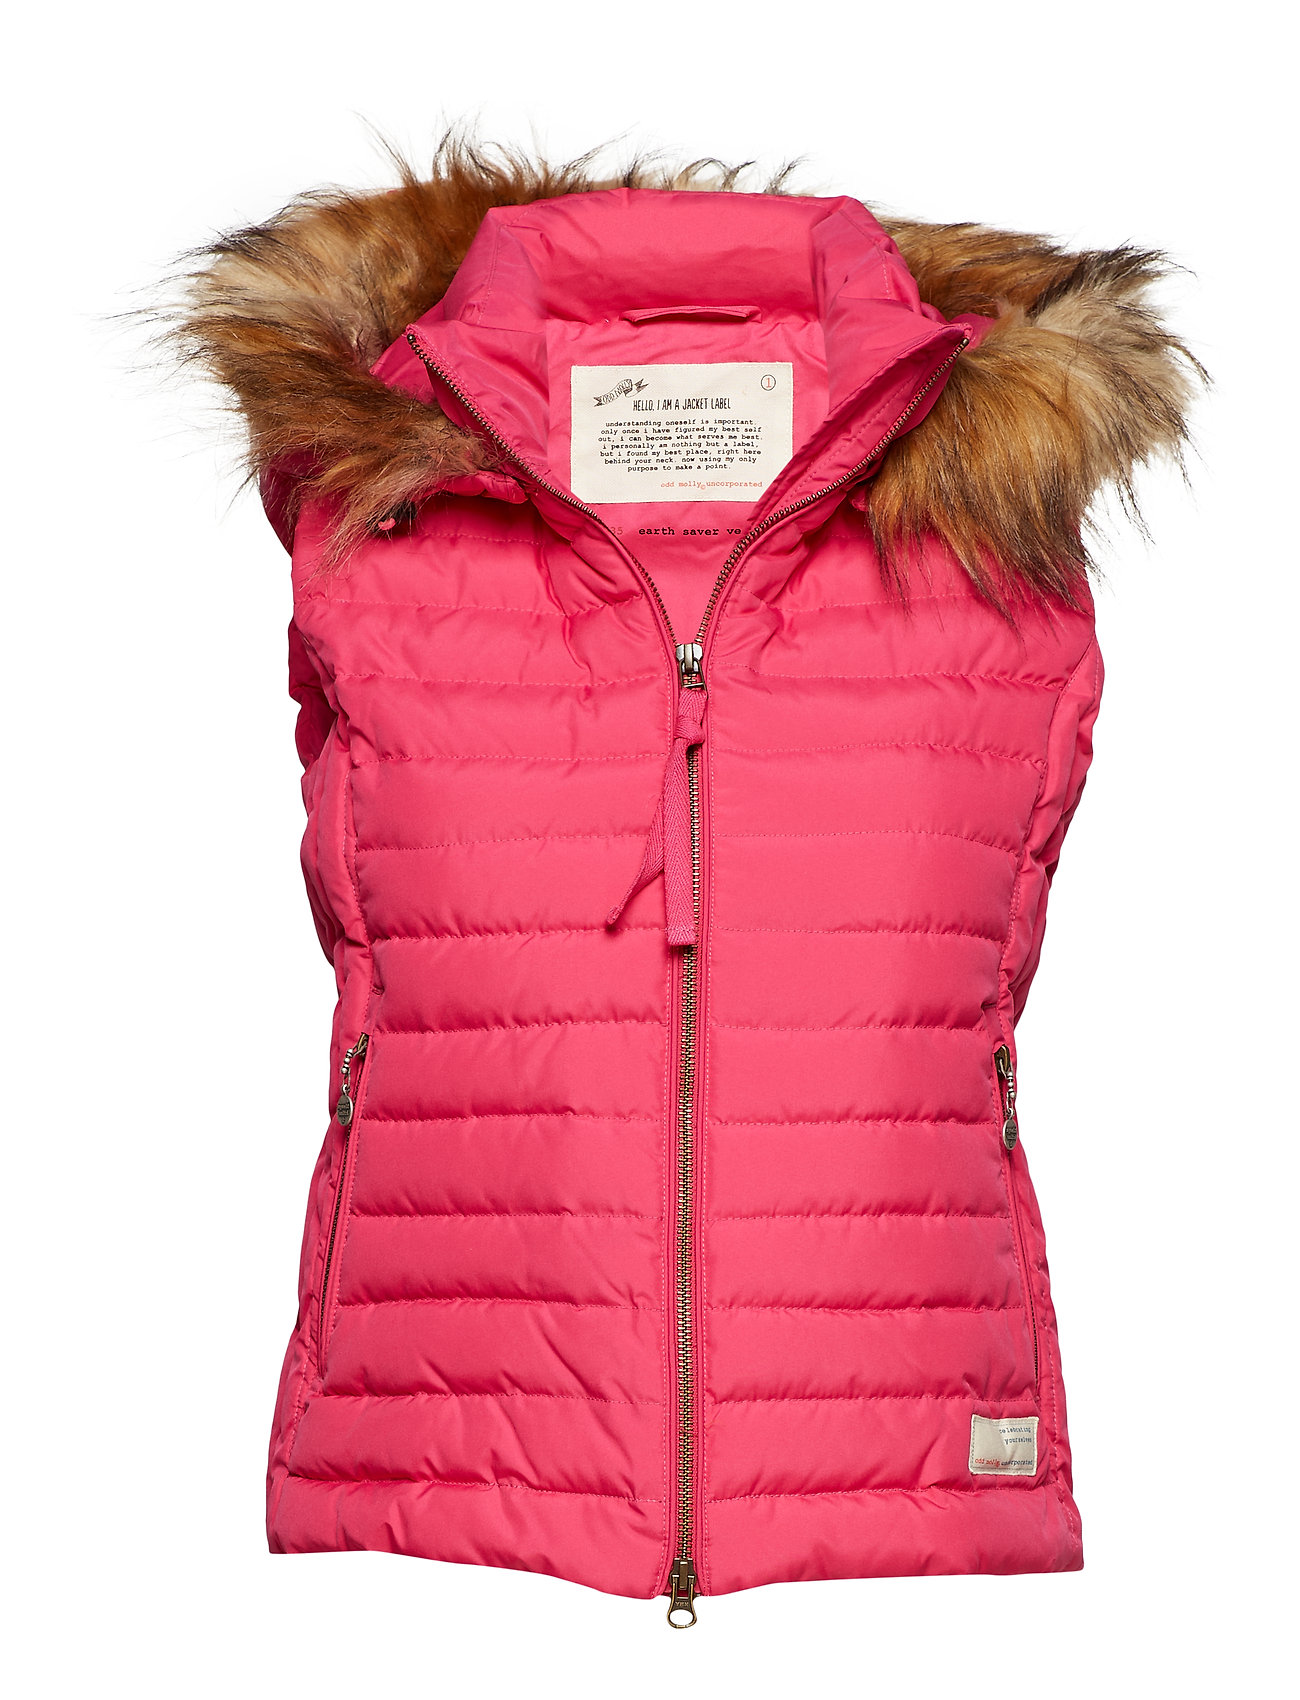 ODD MOLLY ACTIVE WEAR earth saver vest - HOT PINK